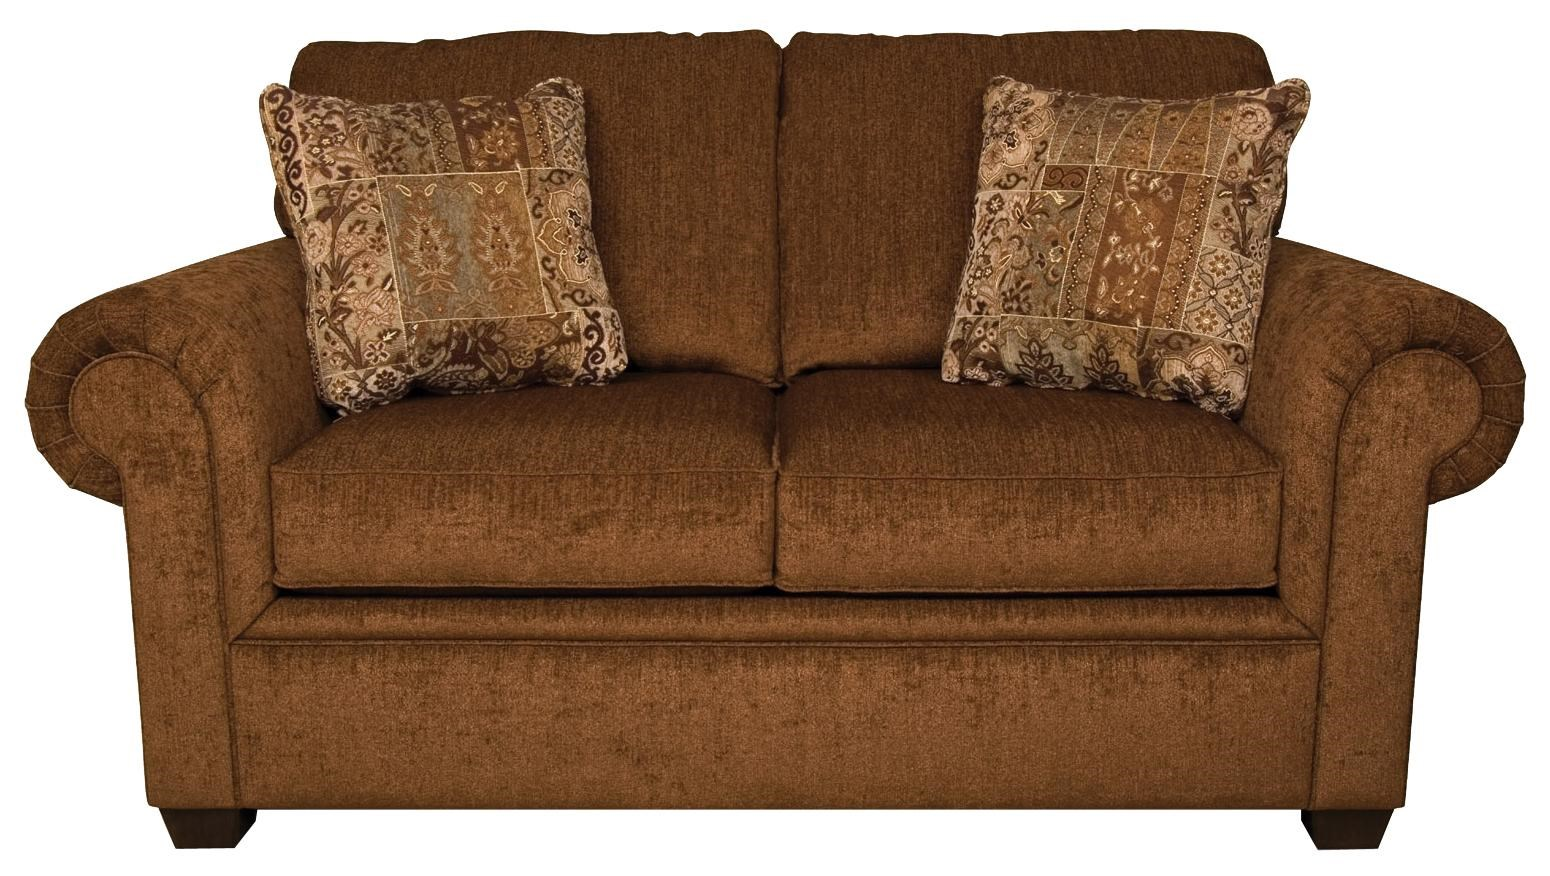 england brett 2256 rolled arm loveseat with exposed block legs   great american home store   love seat england brett 2256 rolled arm loveseat with exposed block legs      rh   greatamericanhomestore